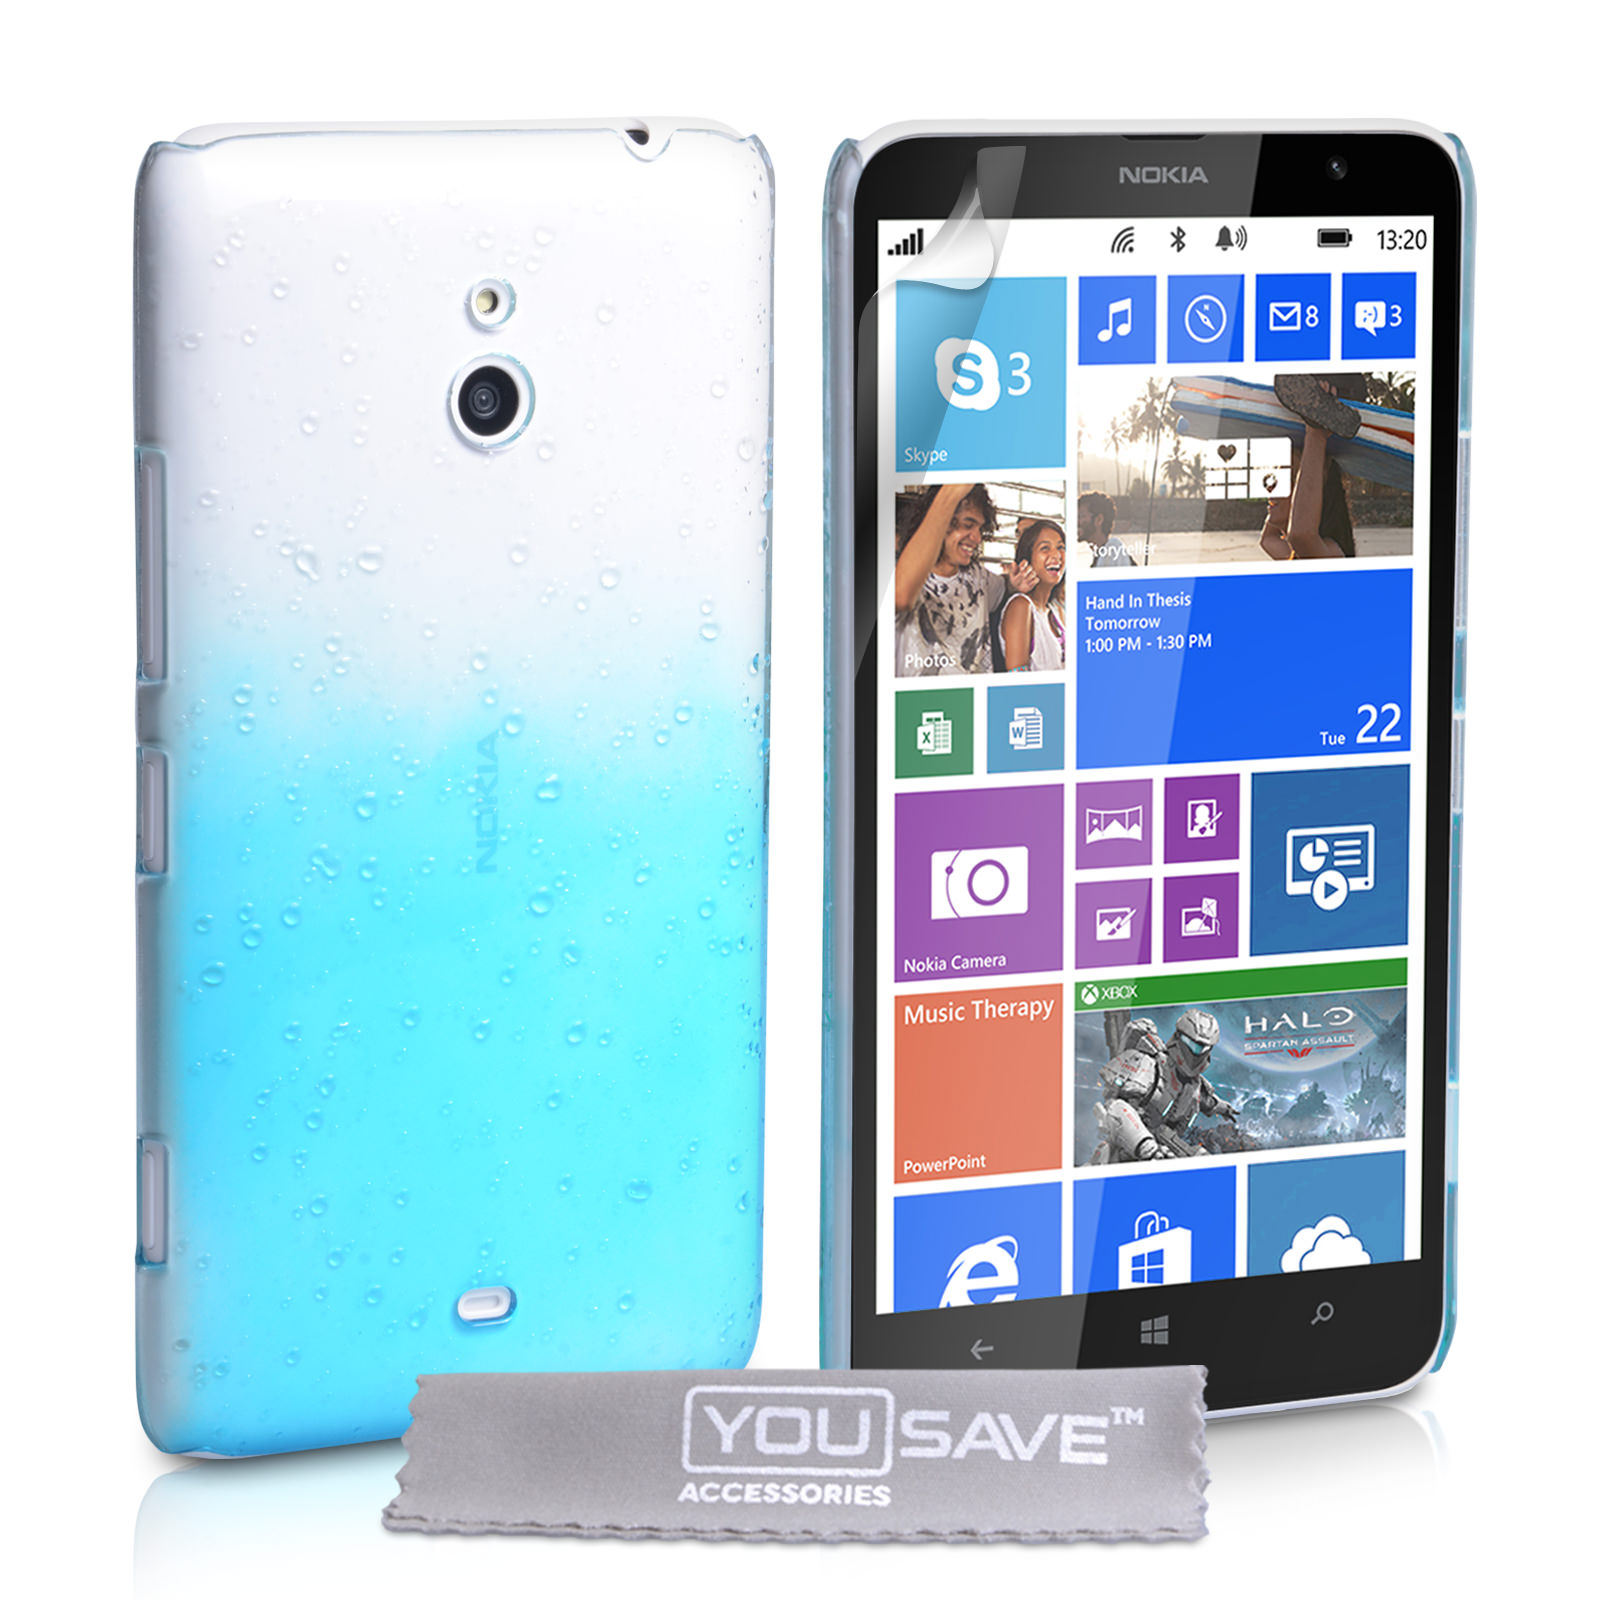 YouSave Accessories Nokia Lumia 1320 Raindrop Hard Case - Blue-Clear